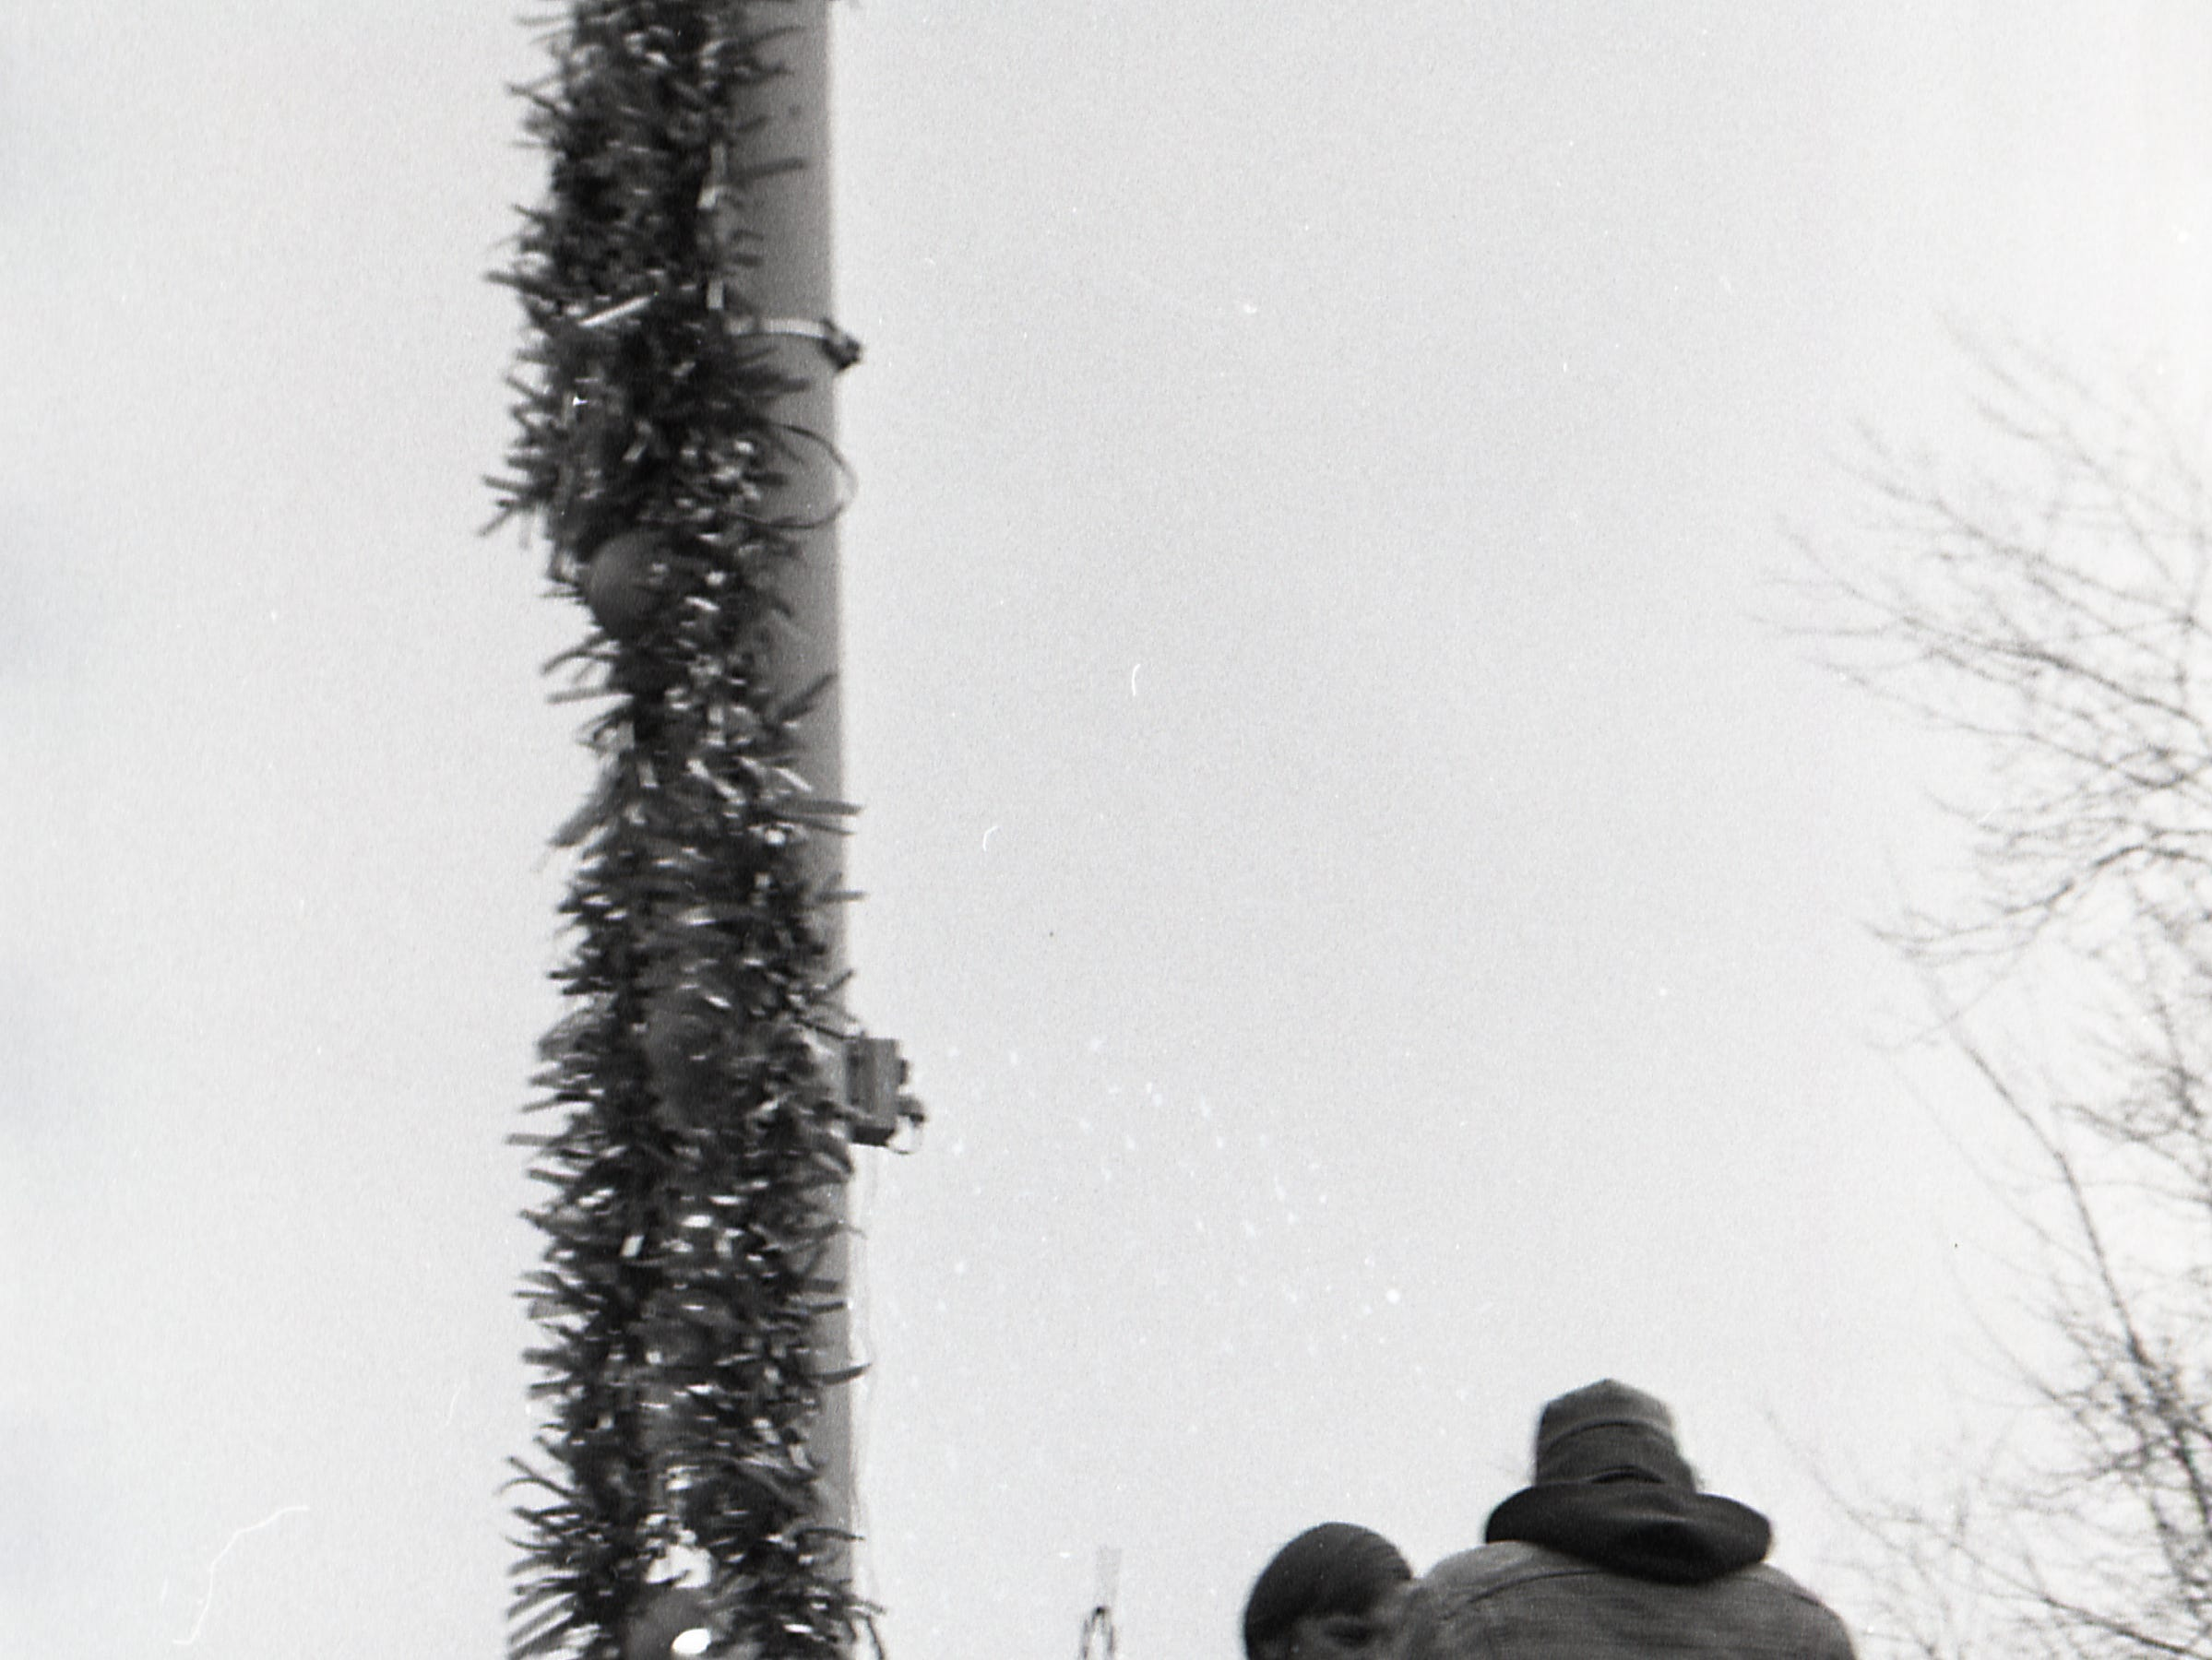 Christmas decorations on Grand River Avenue in East Lansing, Nov. 25, 1977.